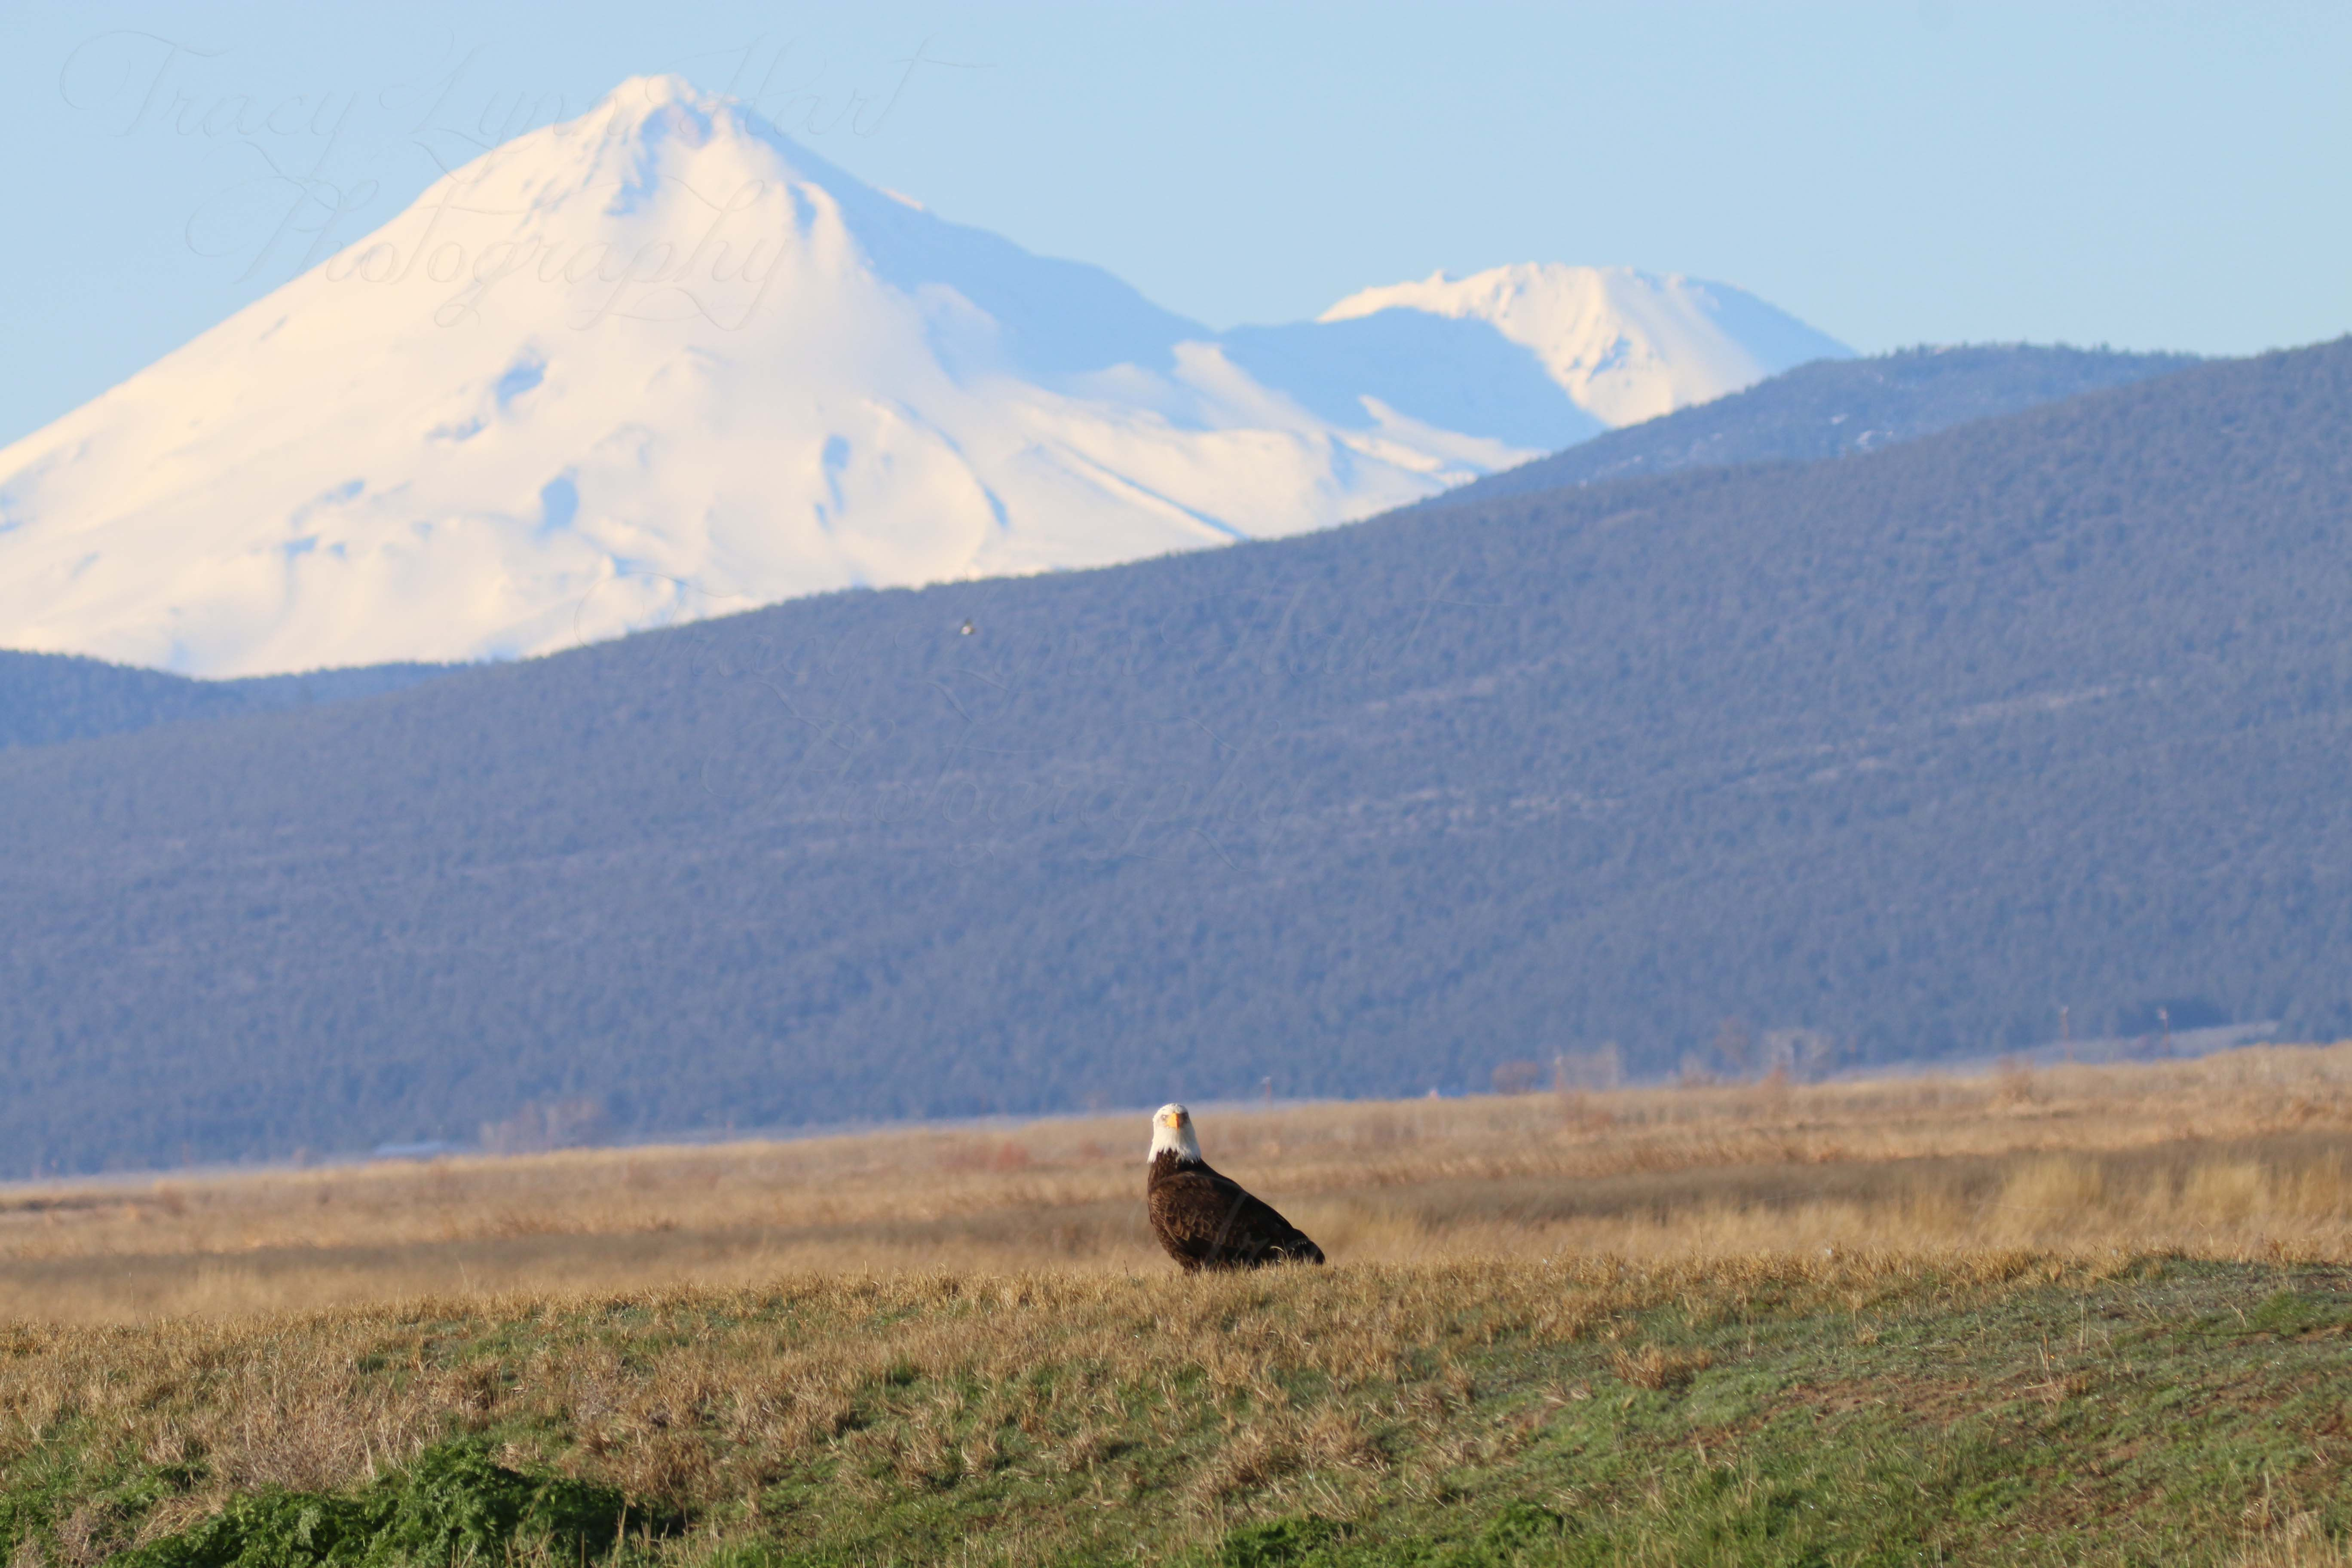 Eagle and Shasta Blog